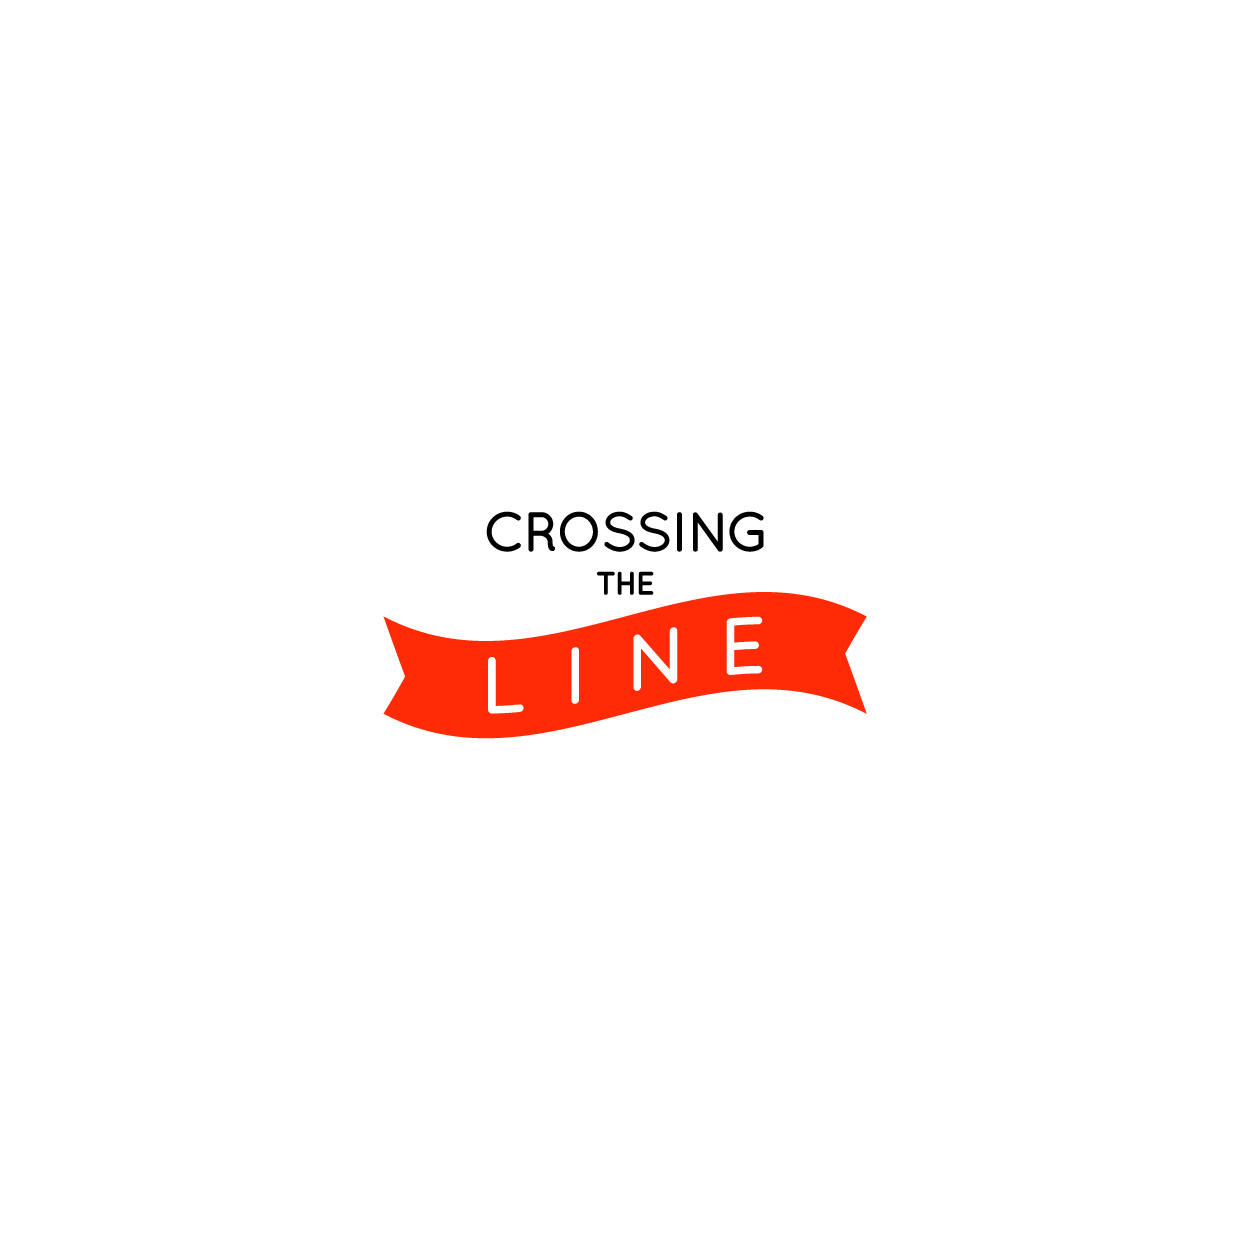 crossing-the-line-logo